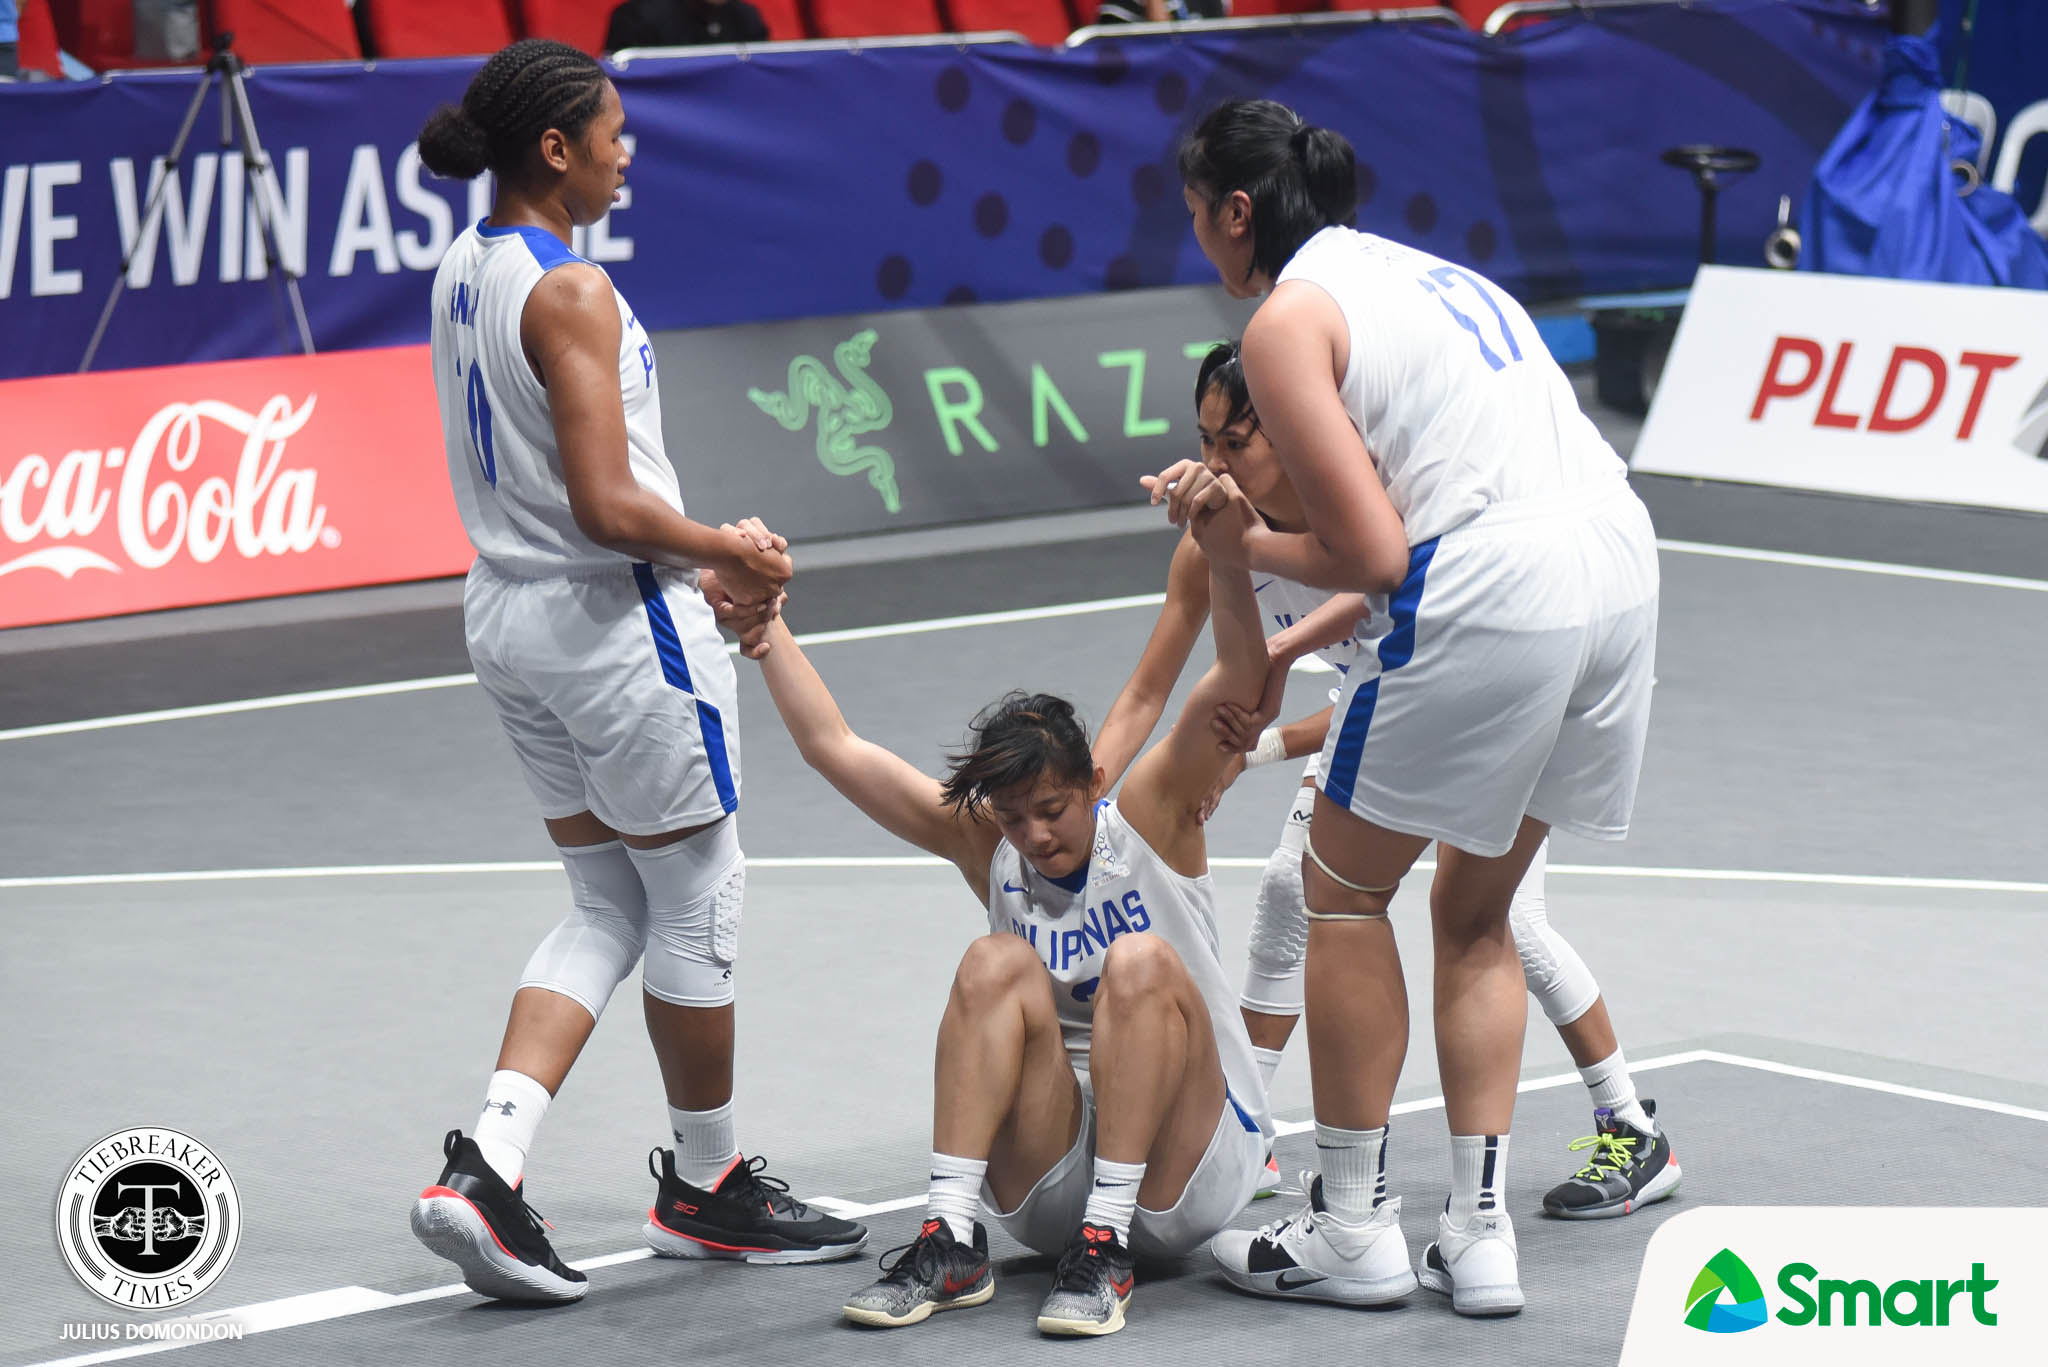 Tiebreaker Times Gilas Women's 3x3 suffer heartbreaker at Thailand's hands to close out SEAG elims 2019 SEA Games 3x3 Basketball Gilas Pilipinas News  Thailand (Basketball) Janine Pontejos Jack Animam Gilas Pilipinas Women Clare Castro Afril Bernardino 2019 SEA Games - 3x3 Basketball 2019 SEA Games